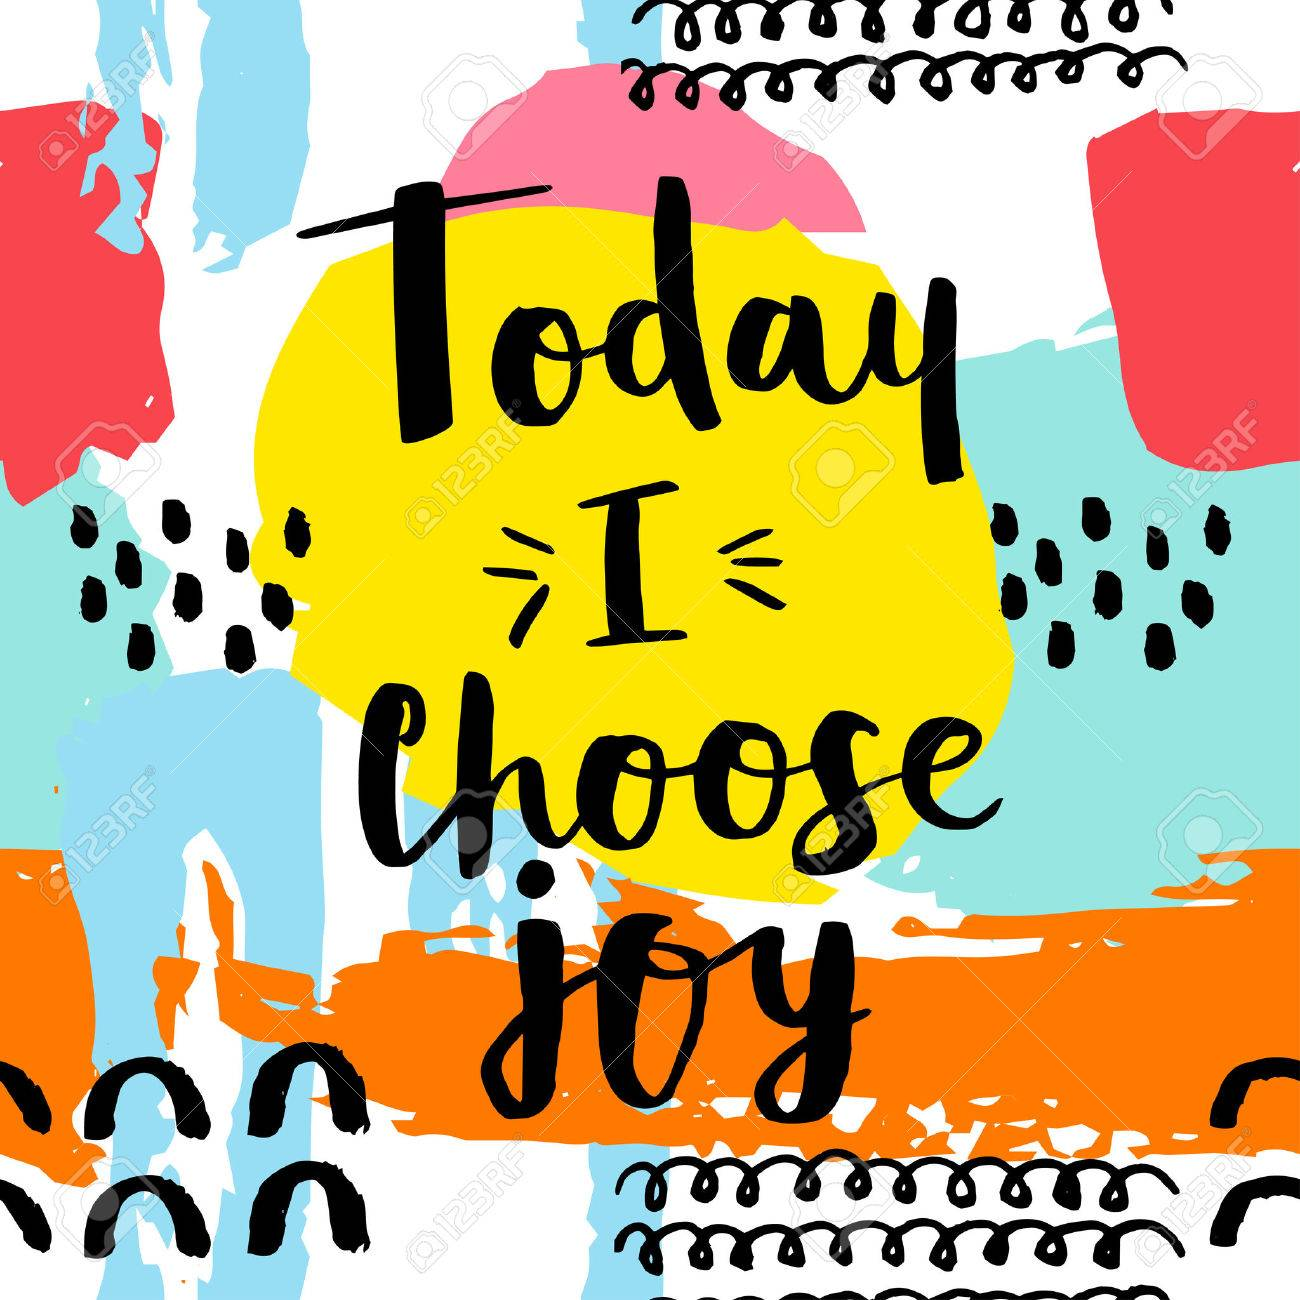 Today i choose joy card. Hand drawing ink lettering vector art, modern brush calligraphy poster. Abstract pattern in Memphis style. Retro design style with ink texture. - 61021332